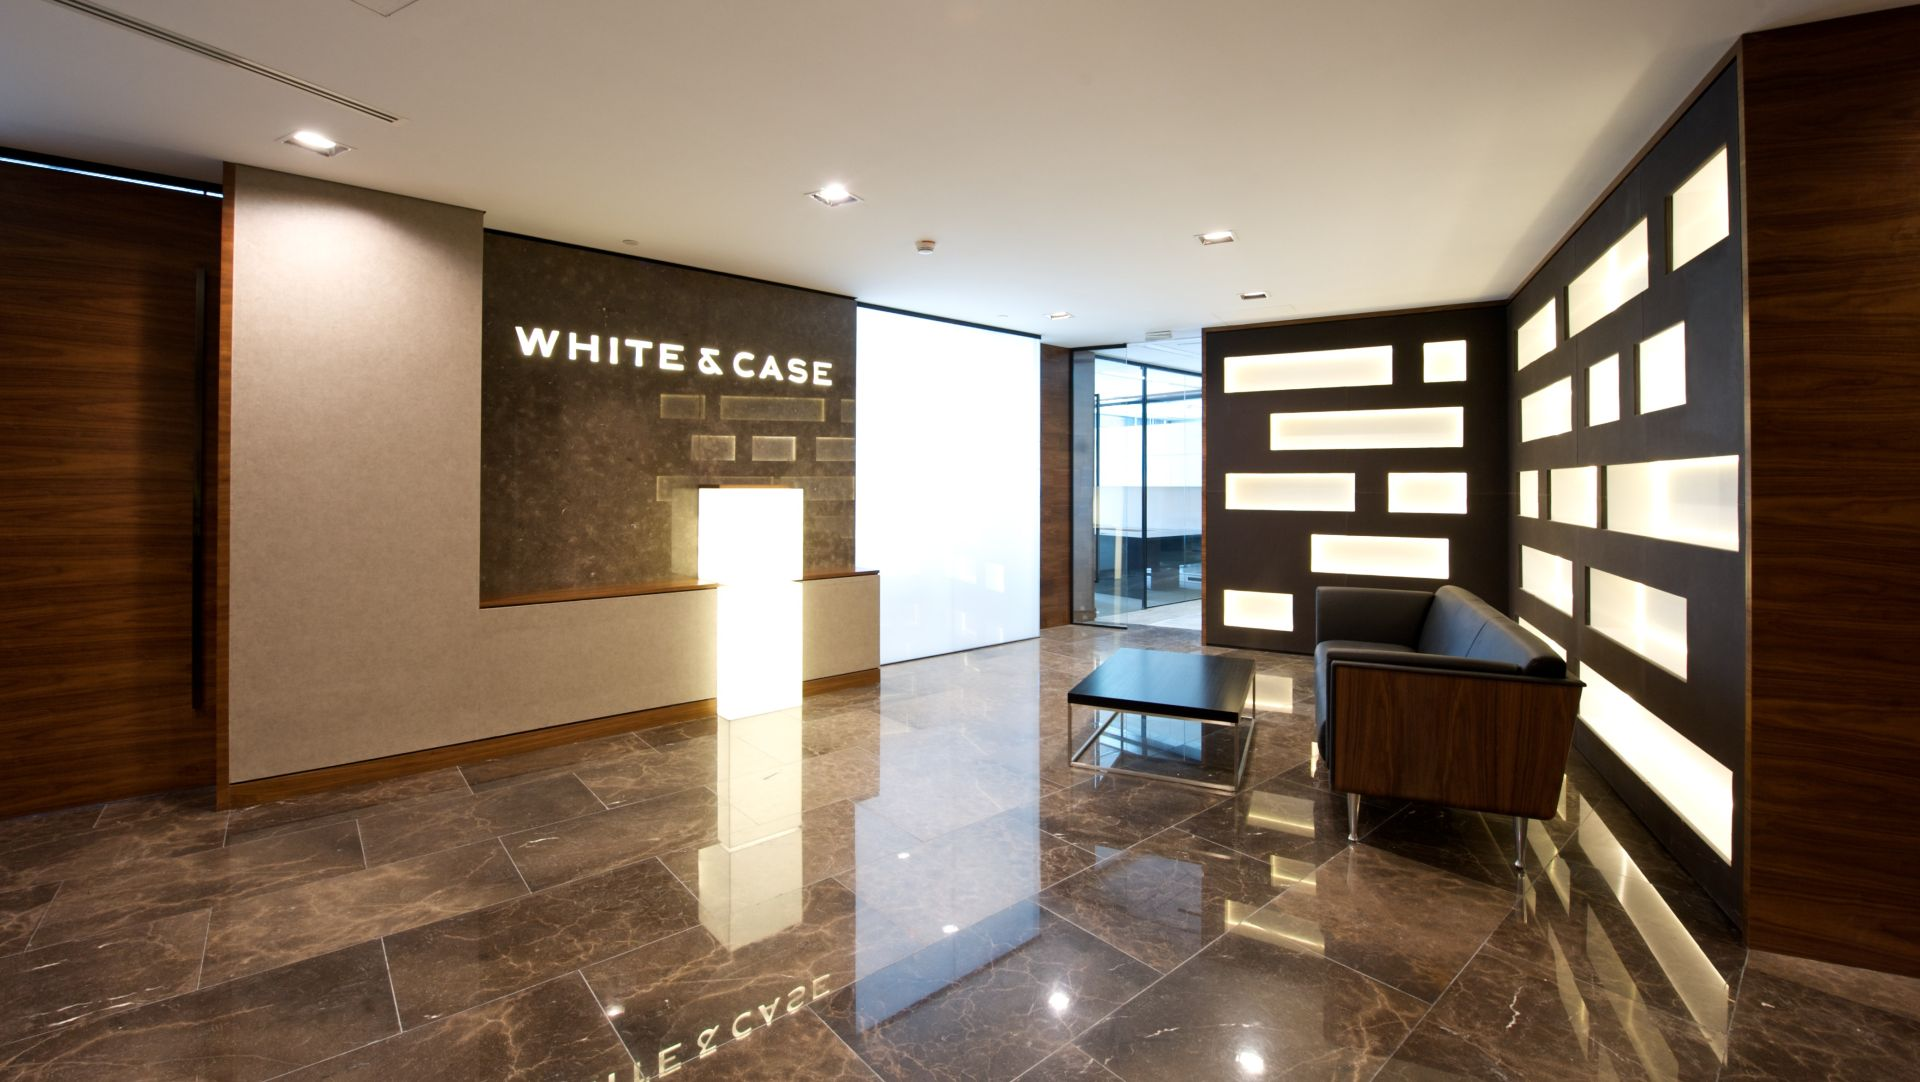 Law Firm/Legal Services Designs: White & Case LLP - Dubai ...